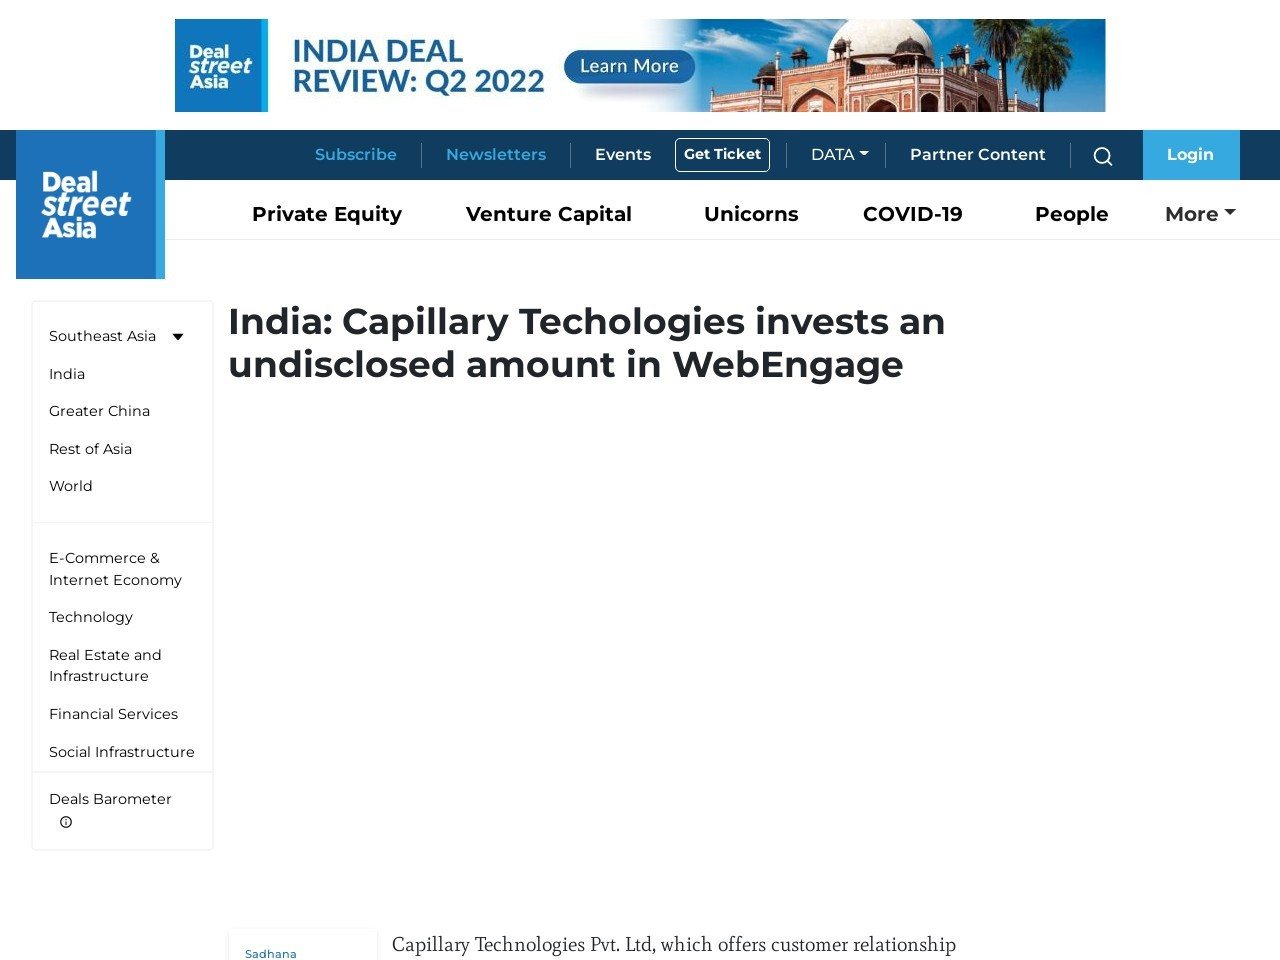 India: Capillary Techologies invests an undisclosed amount in WebEngage